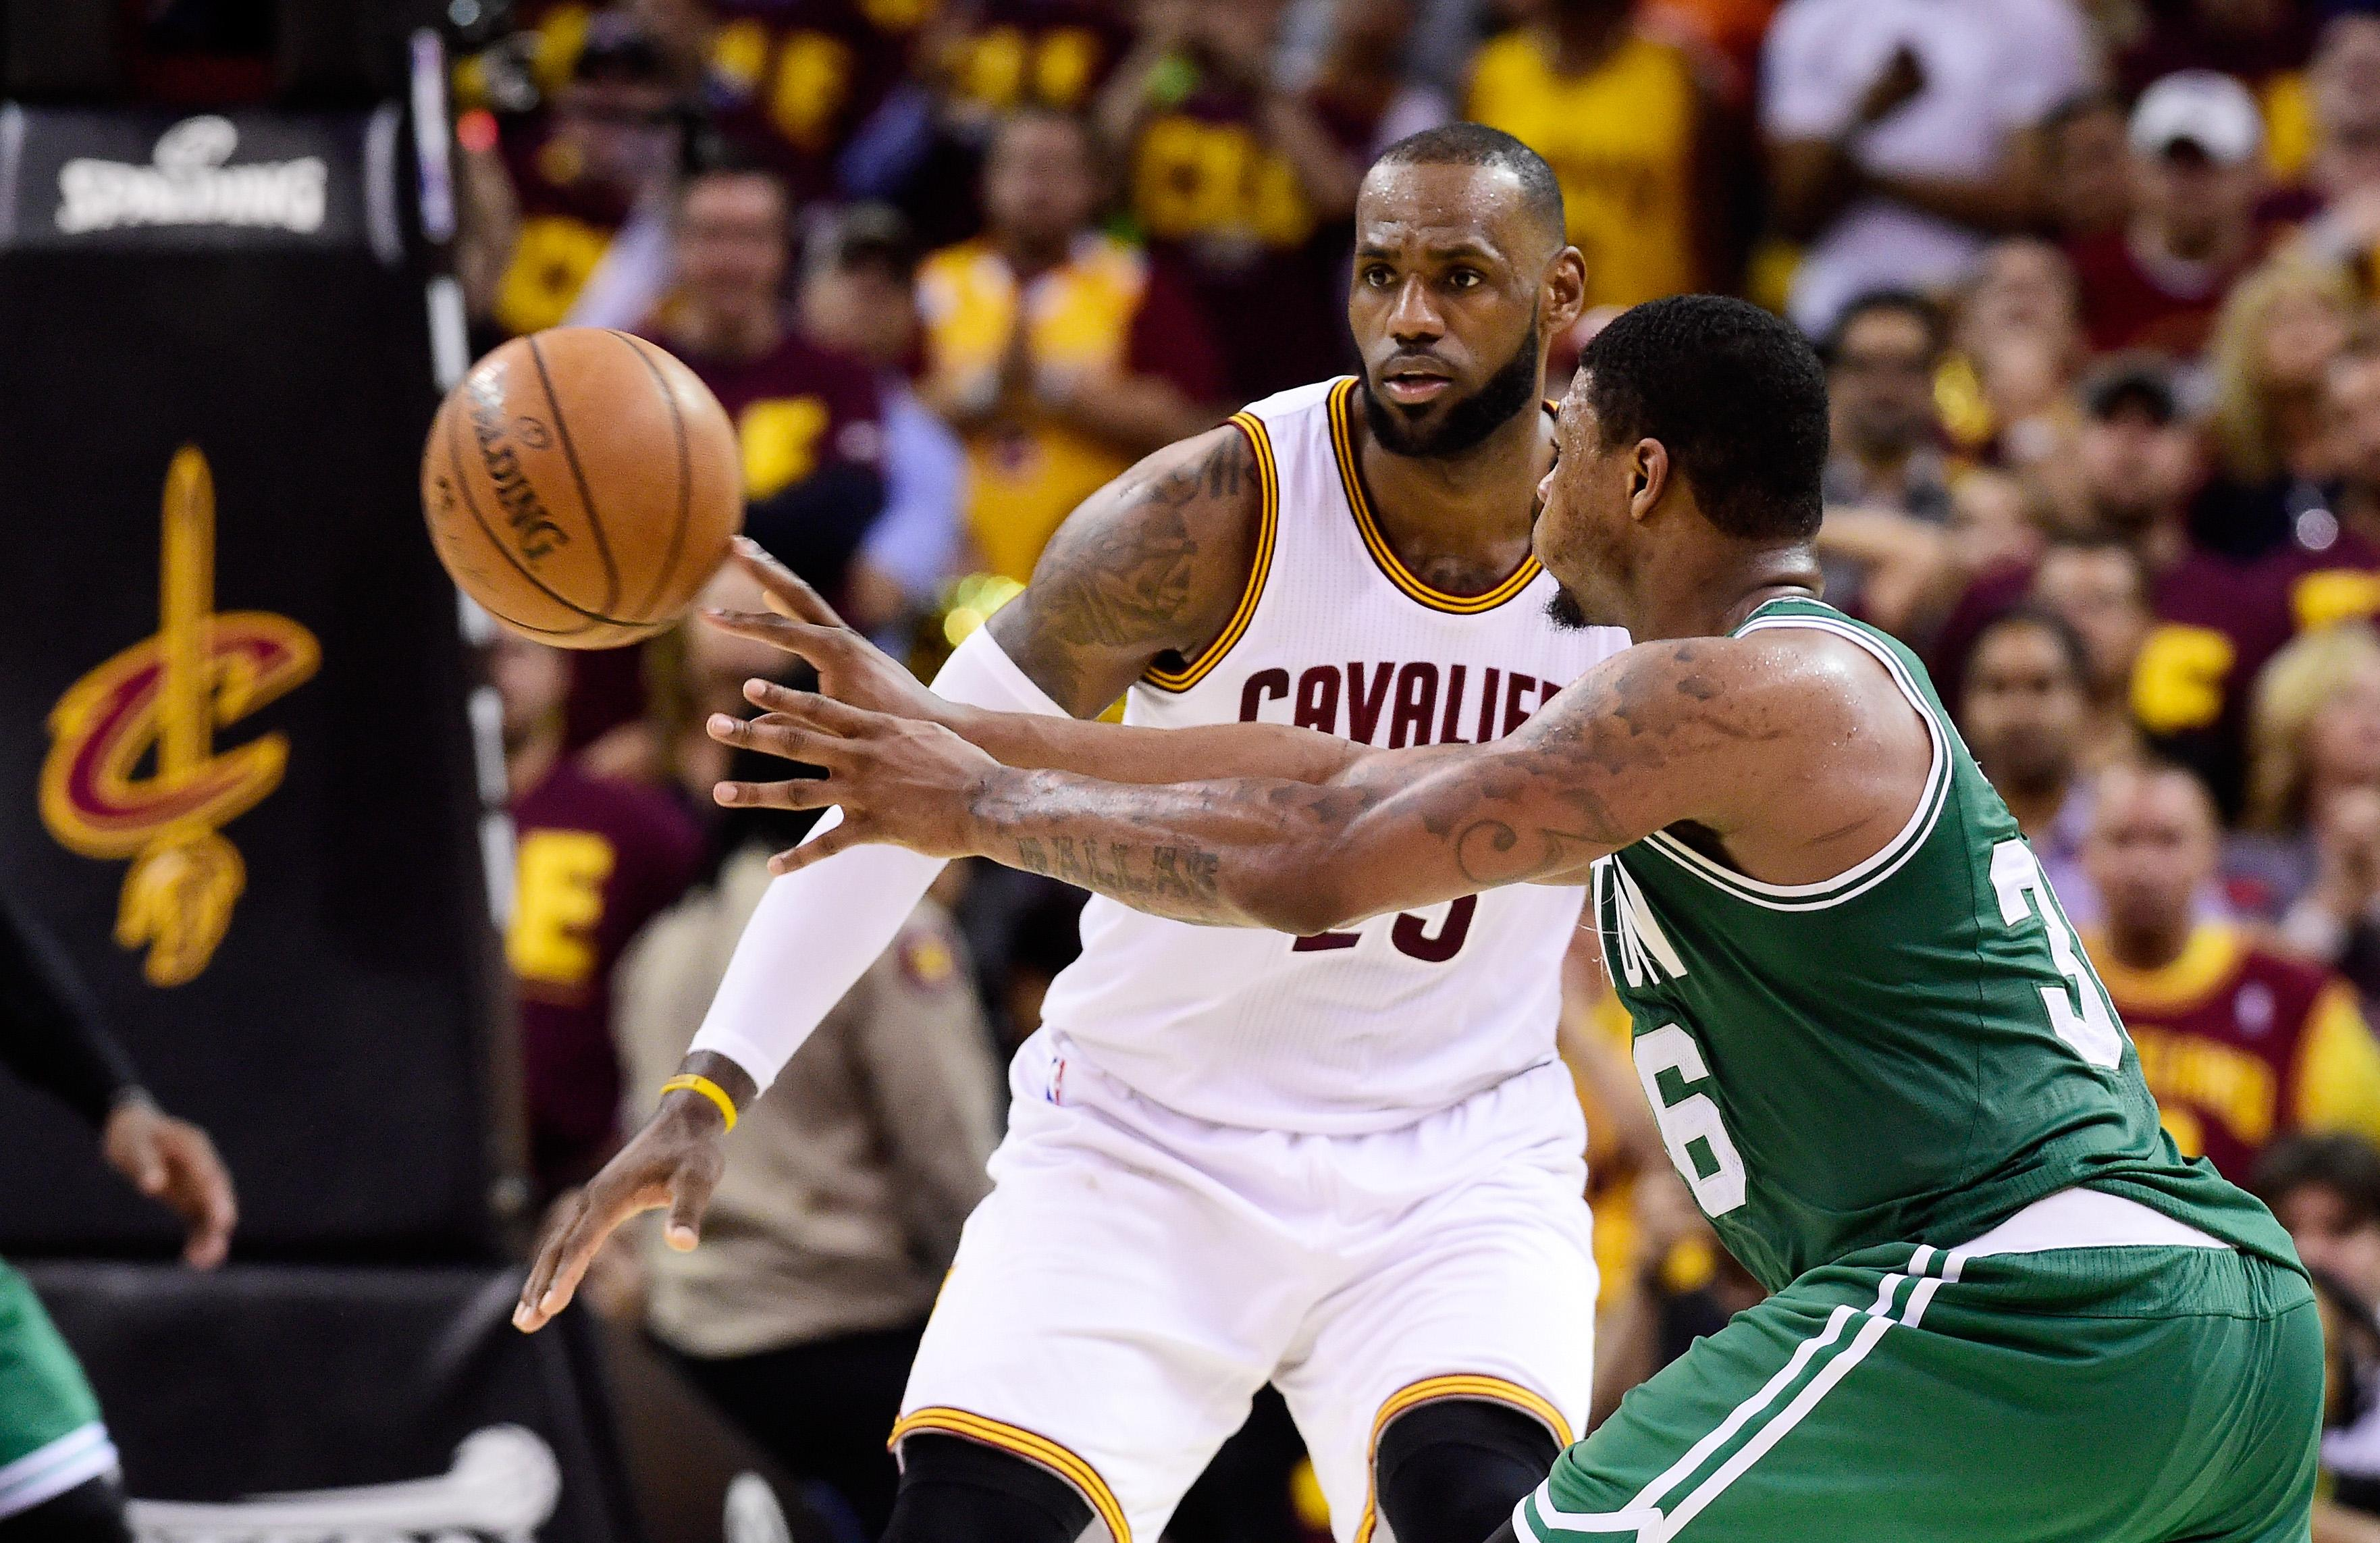 Bradley's triple shocks Cavs, Celtics take a game